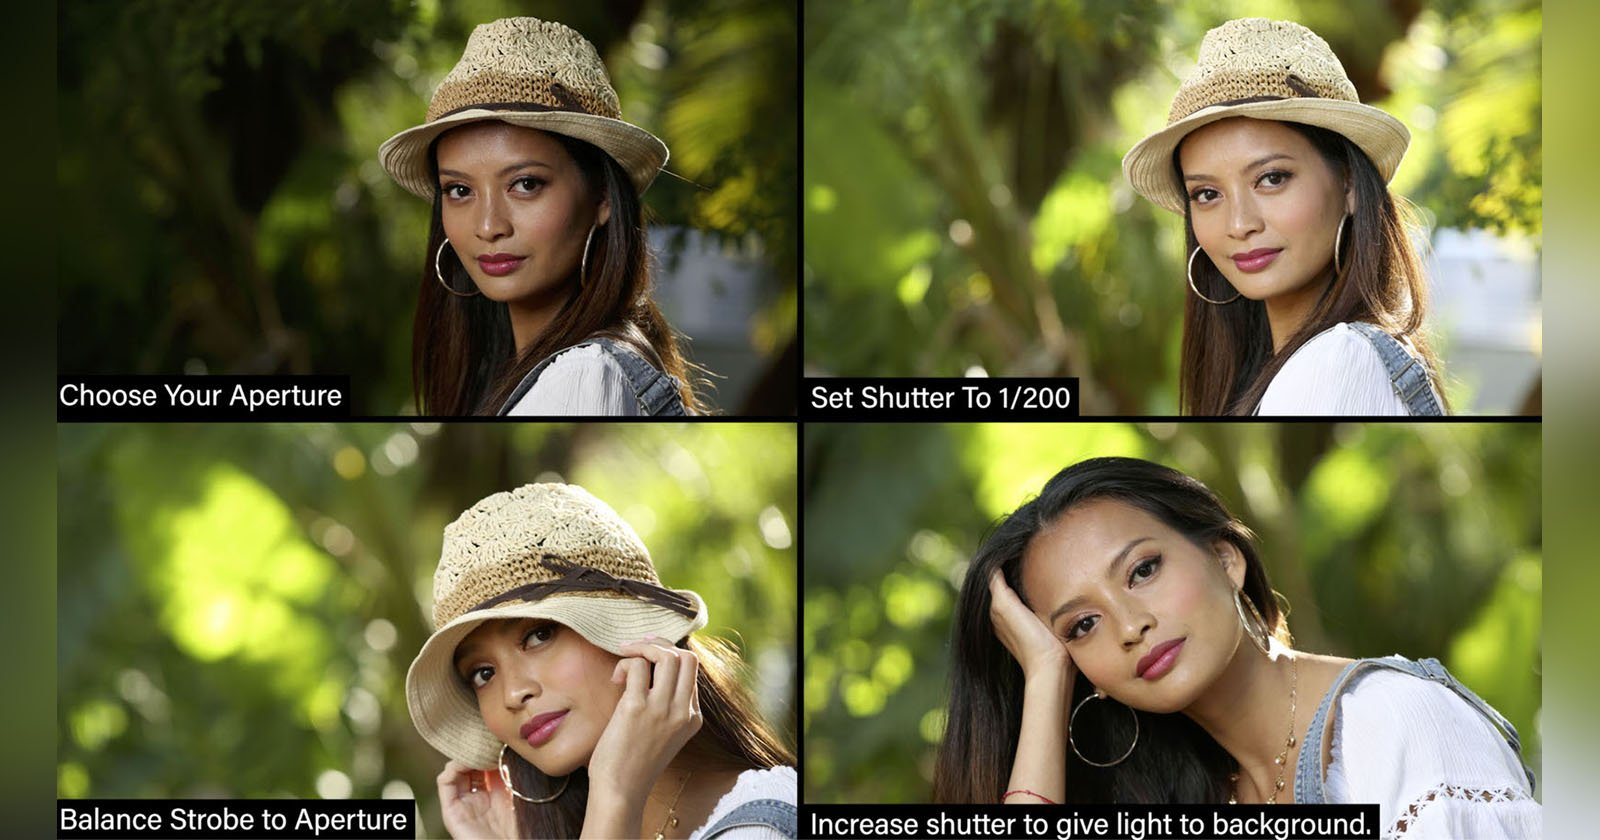 4 Steps Every Photographer Should Know To Balance Strobes and Sunlight